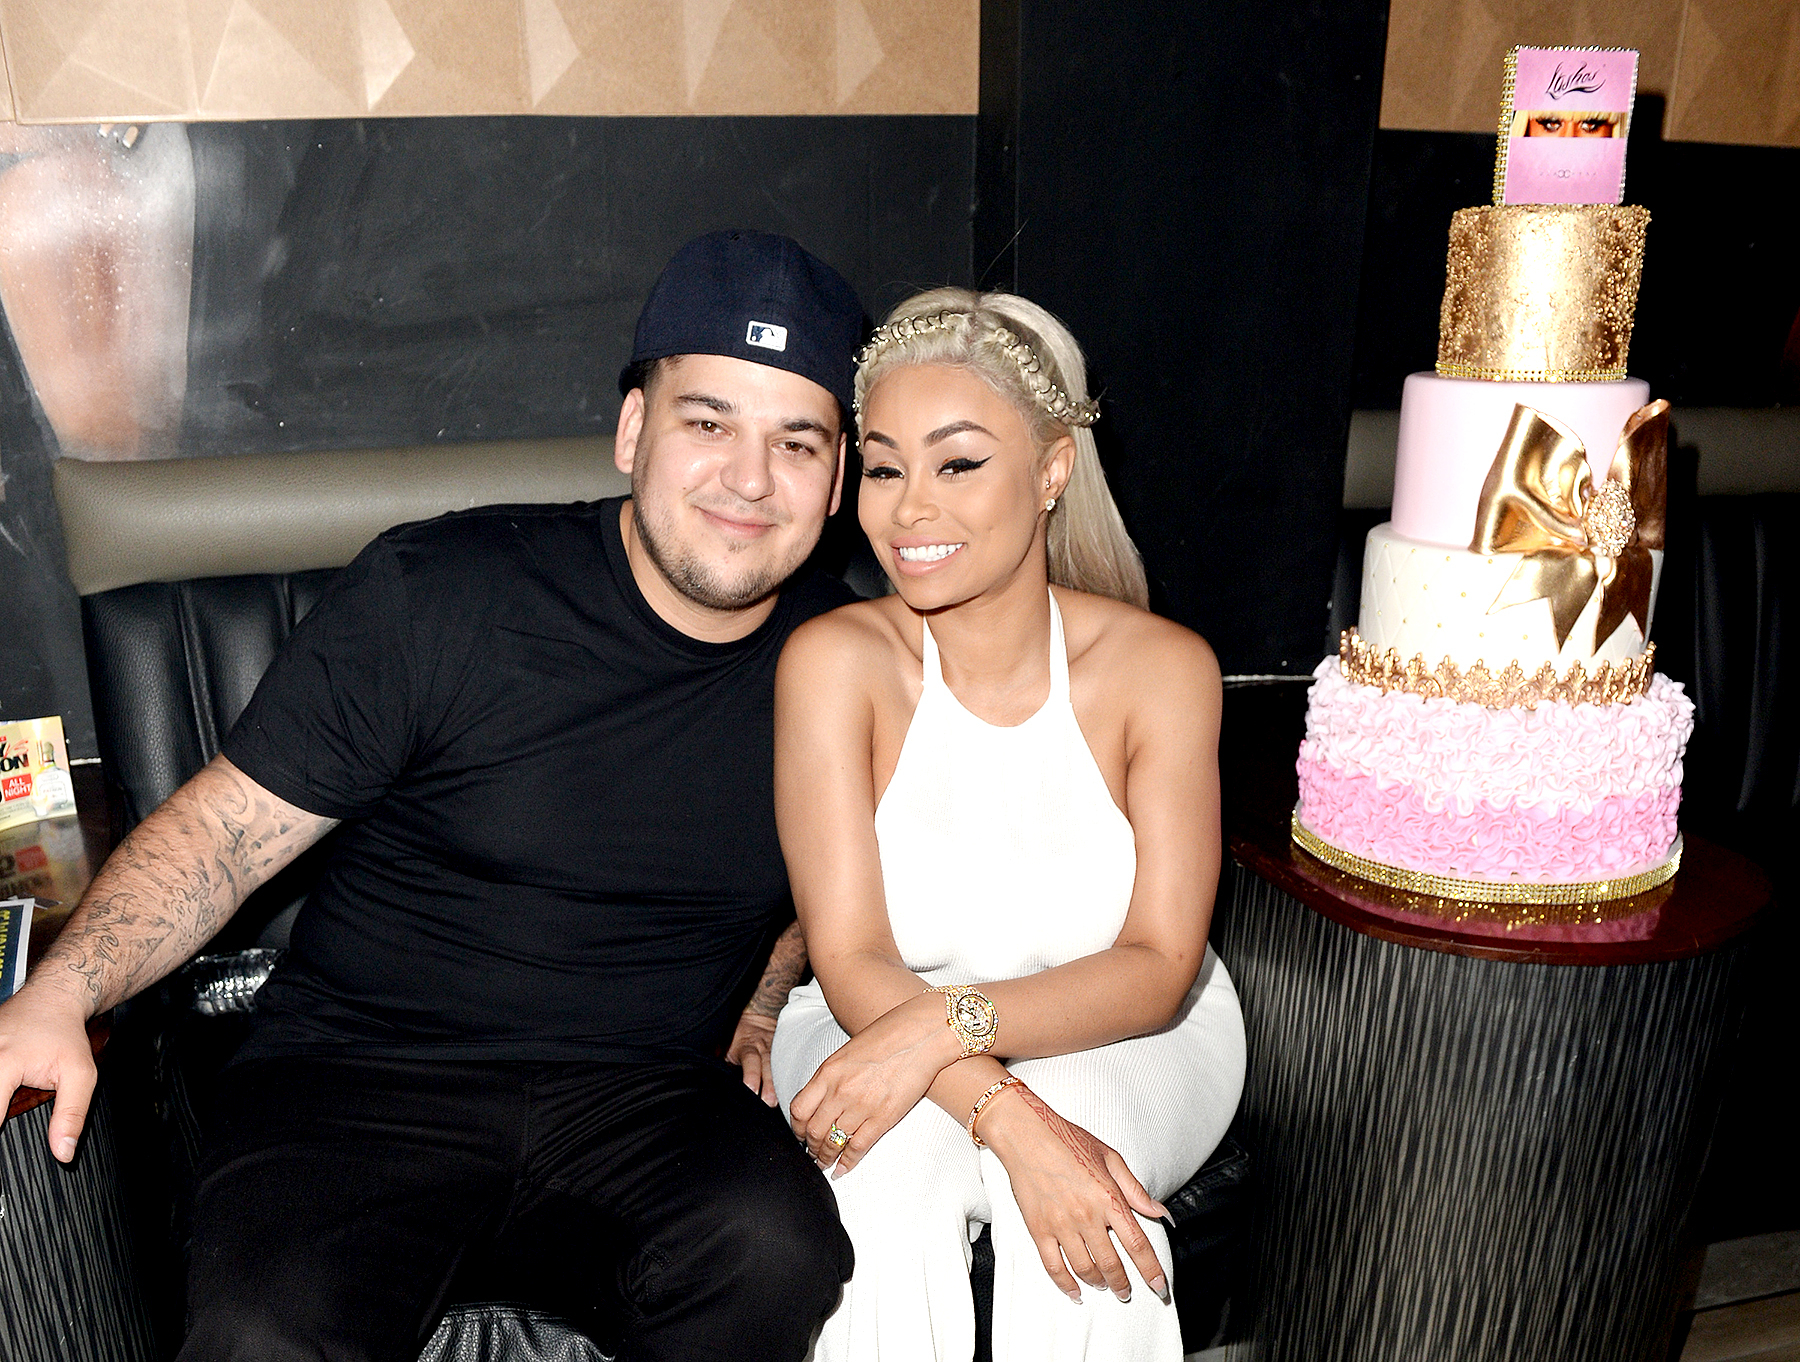 Blac Chyna and Rob Kardashian are all smiles as they celebrate Chyna's twenty-eighth birthday at the G5ive Strip Club in Miami in 2016.